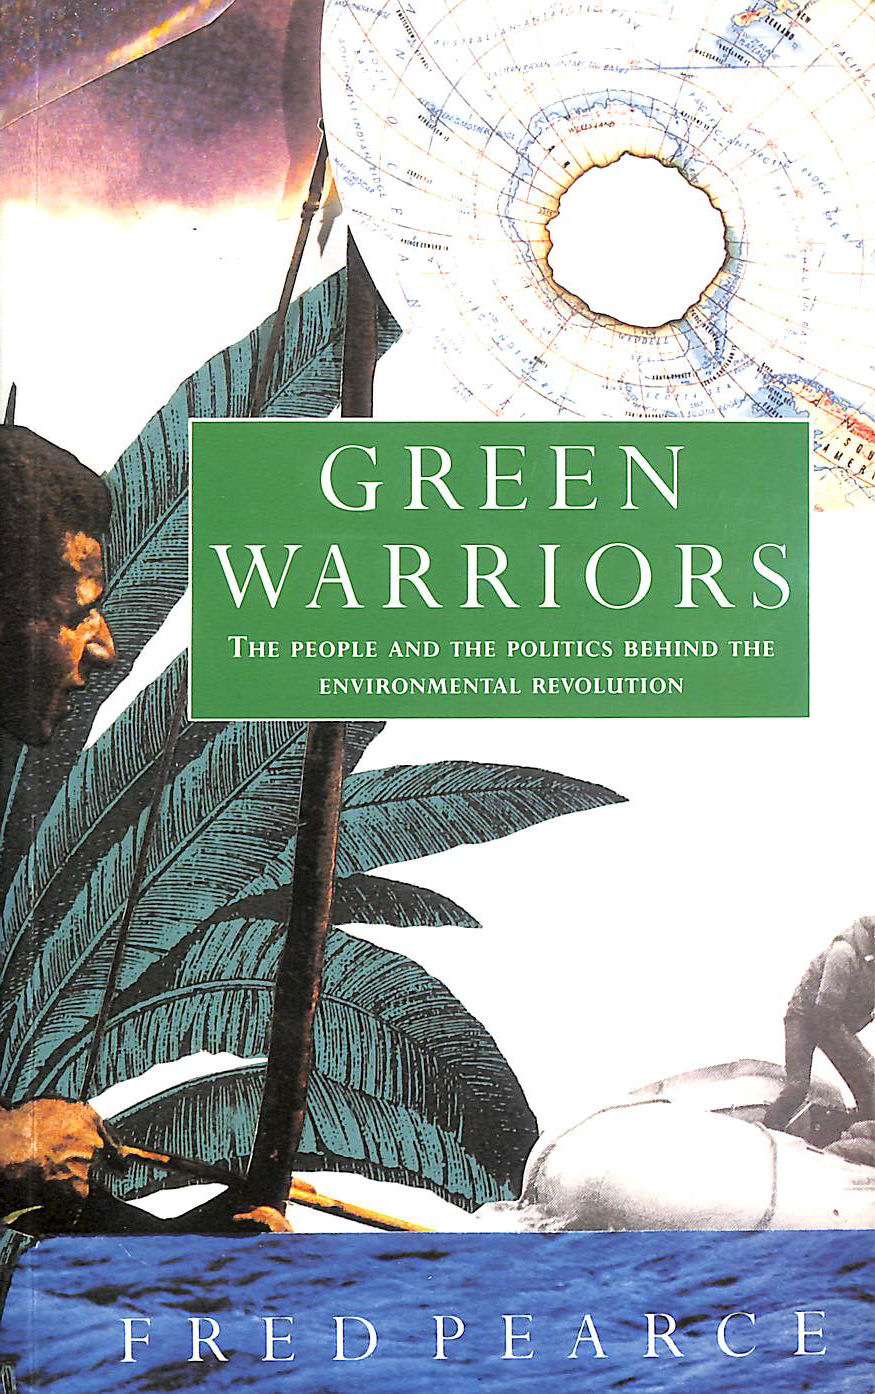 Green Warriors: The People and the Politics behind the Environmental Revolution., Fred Pearce